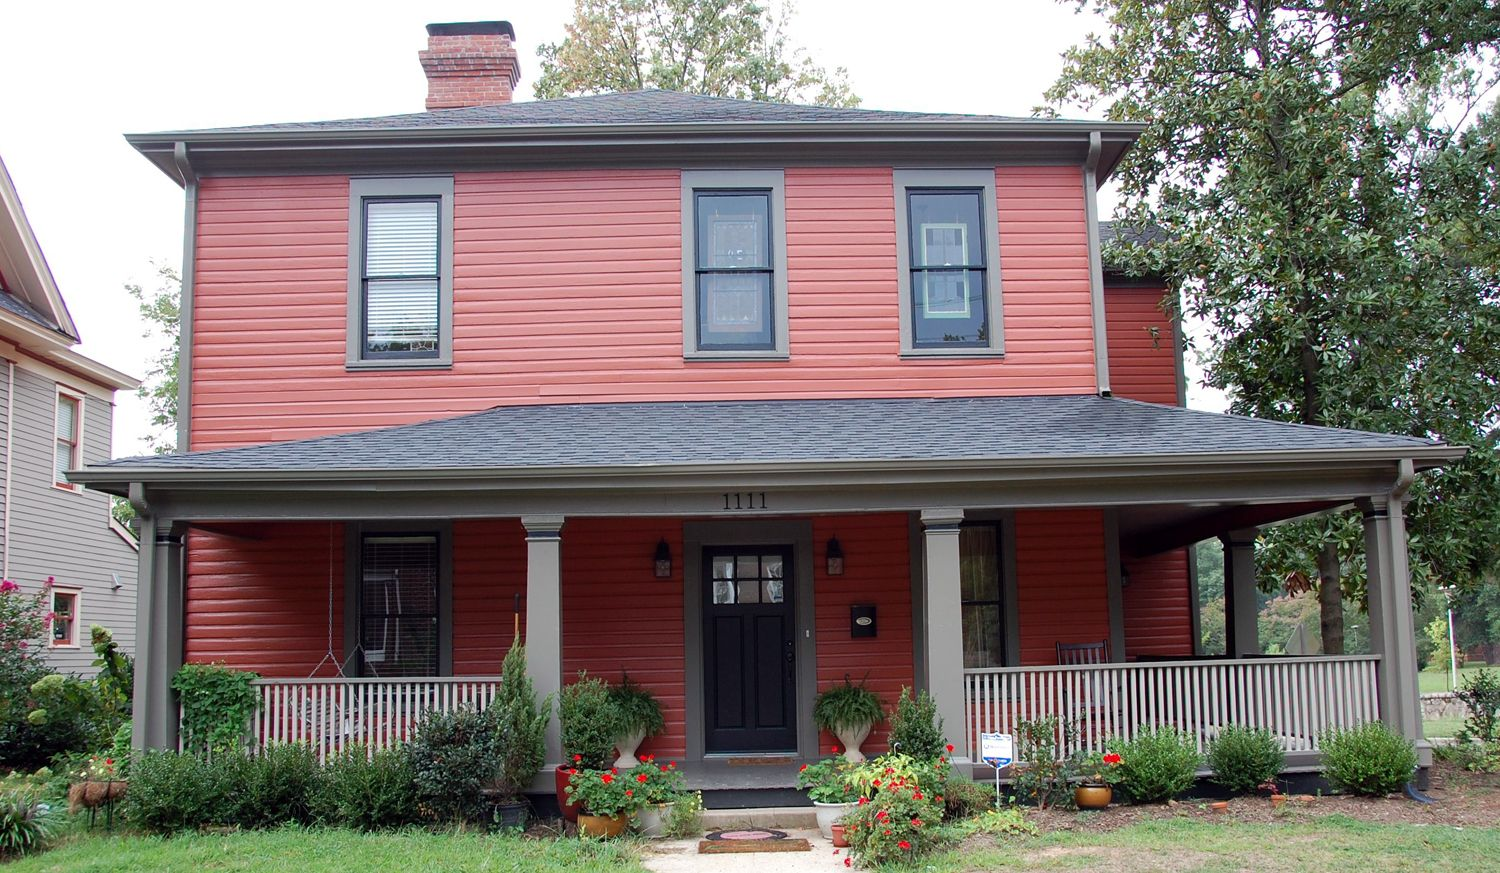 Craftsman Exterior Paint Color Combinations For Small Homes With Bricks Based On Craftsman Are